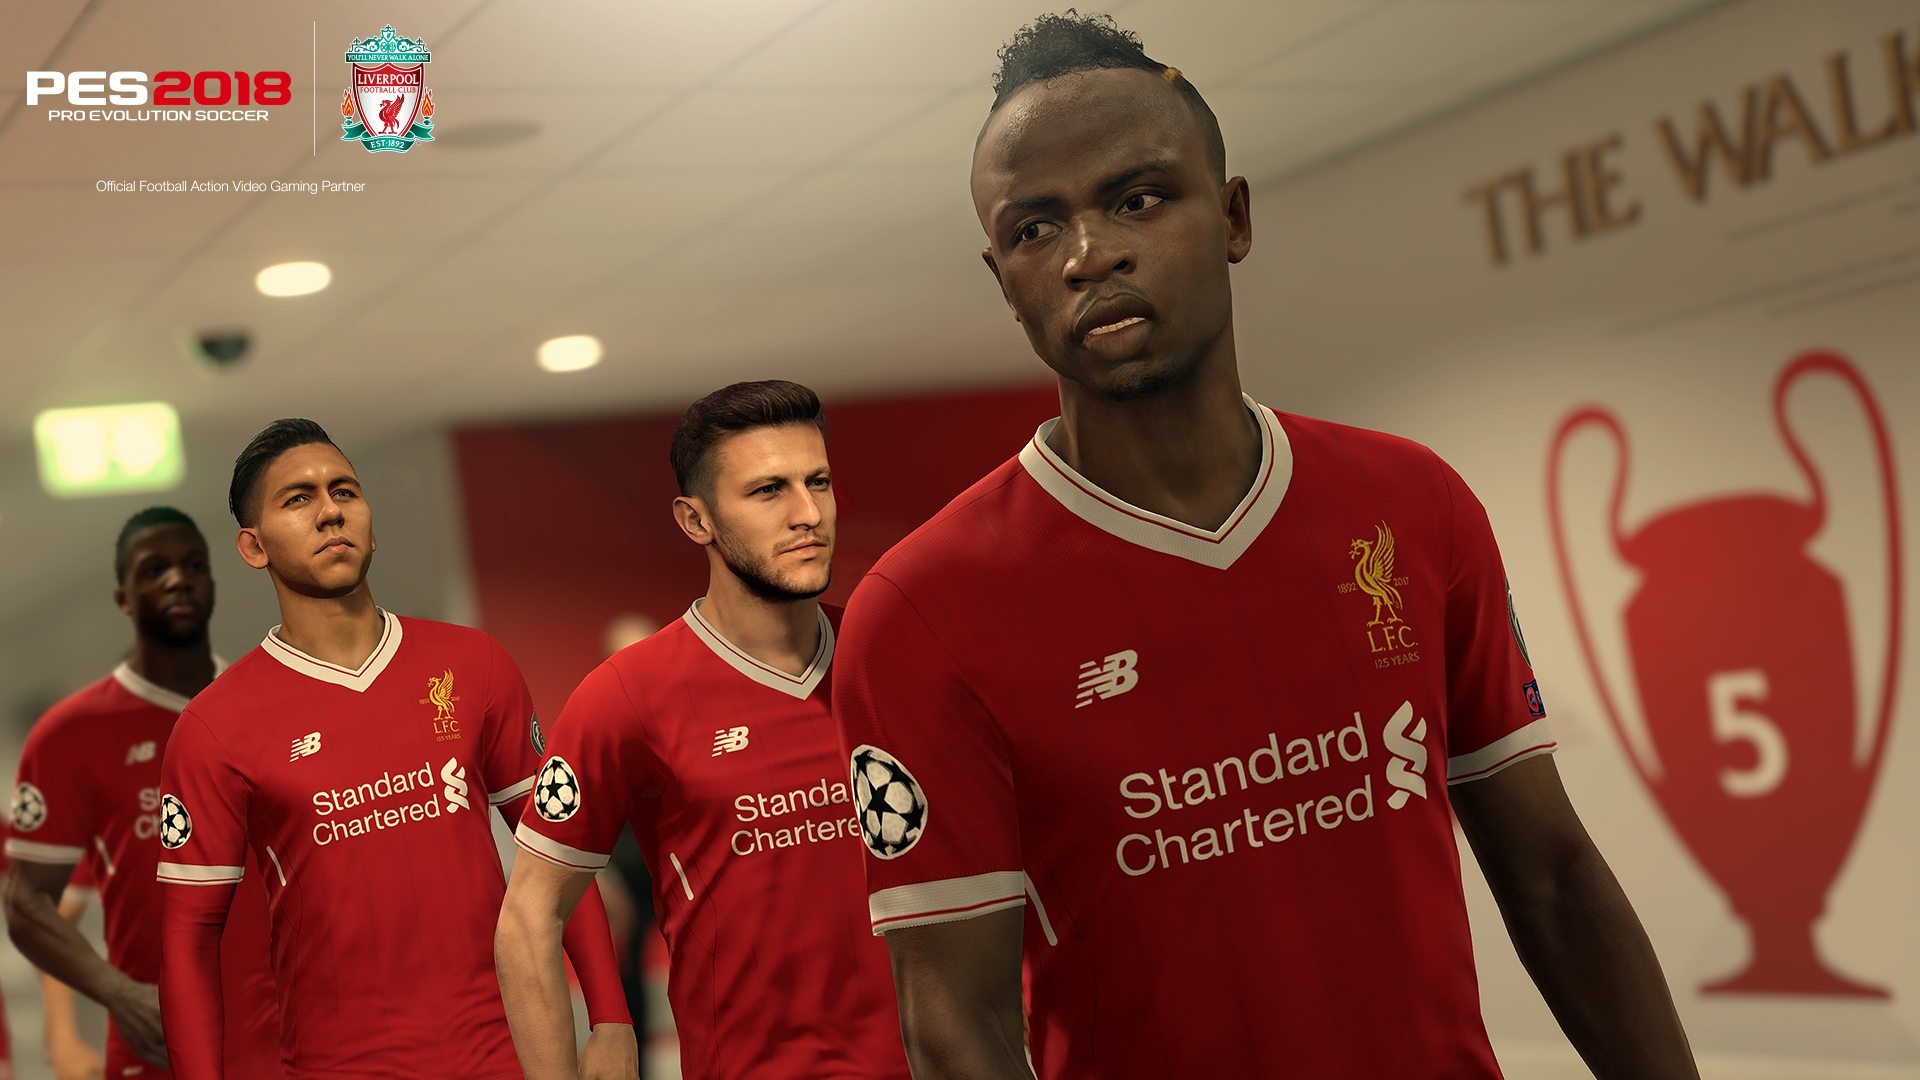 PES 2018 Pro Evolution Soccer 2018 PS4 Xbox One PC Liverpool